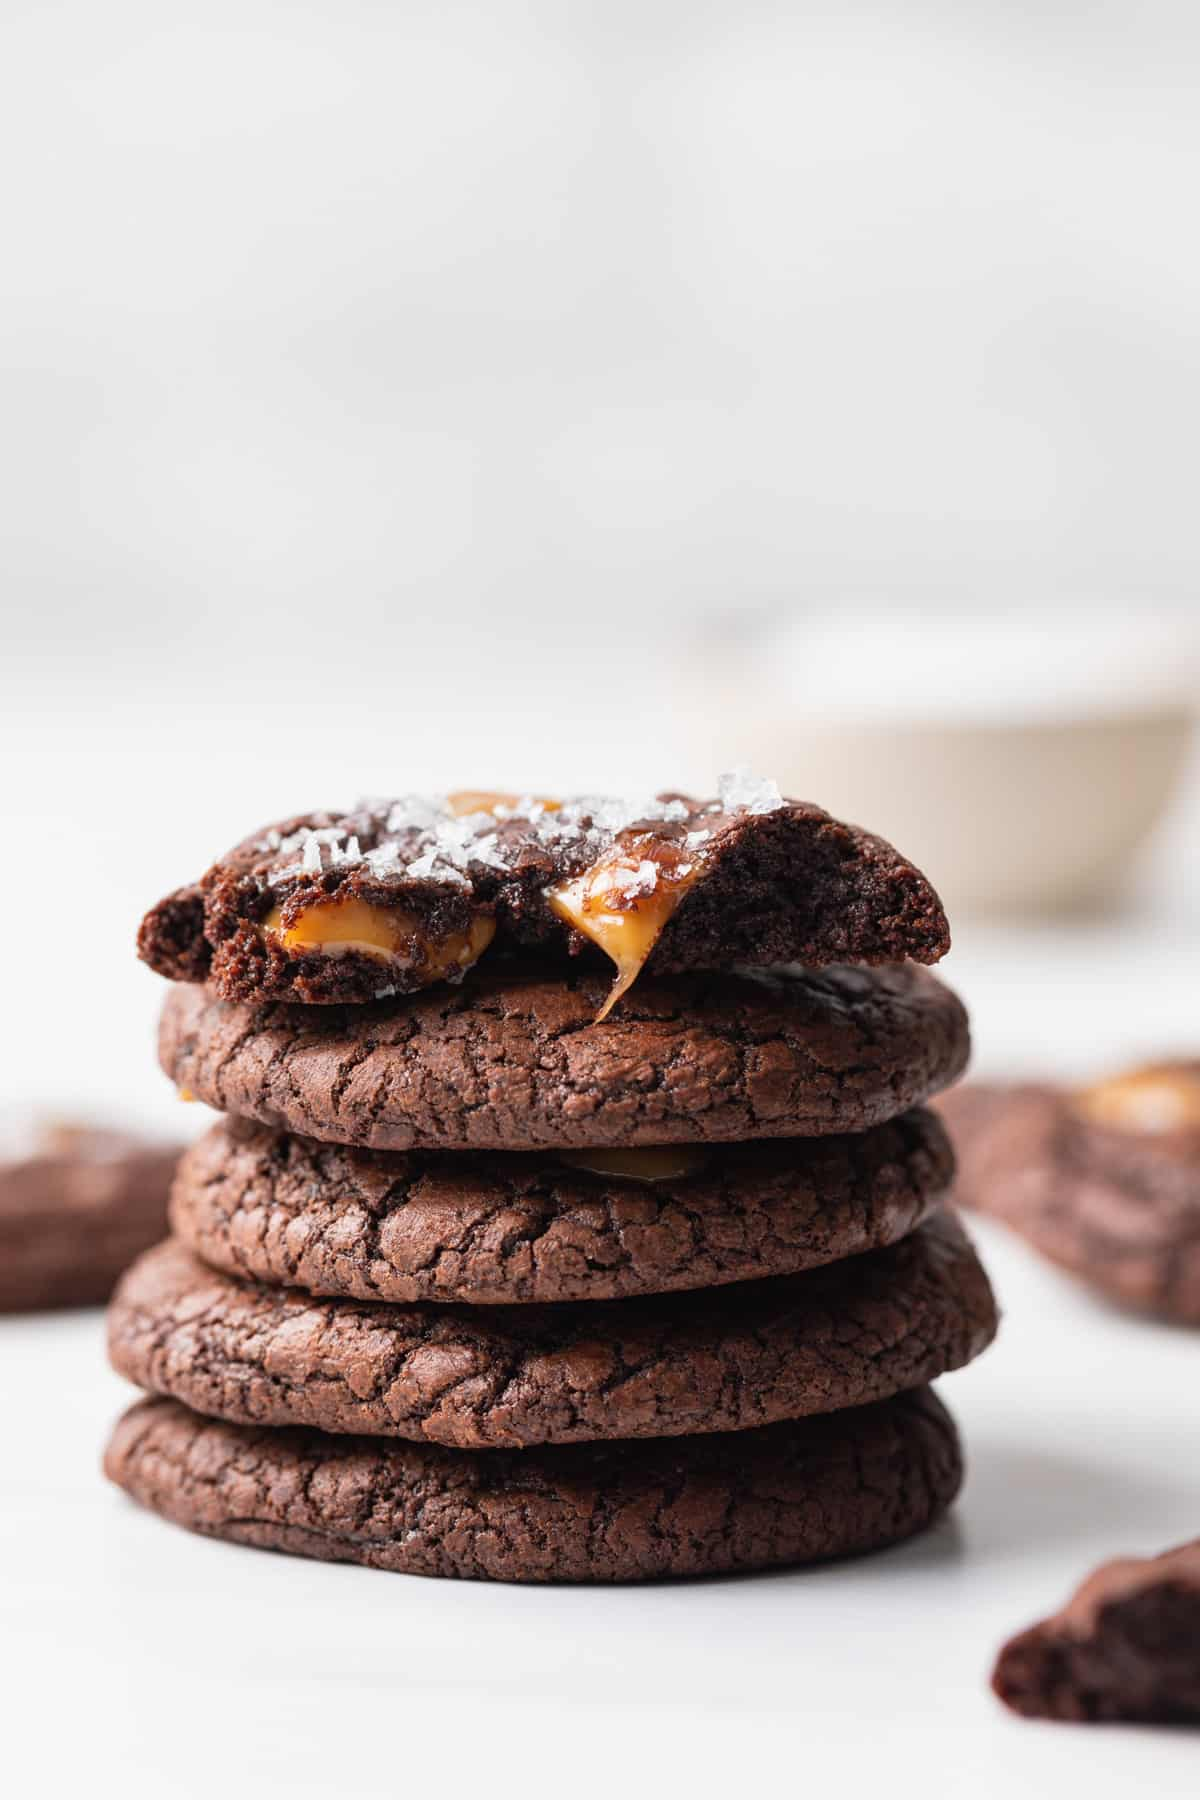 five salted caramel brownie cookies stacked with the top one broken in half so the gooey caramel is visible